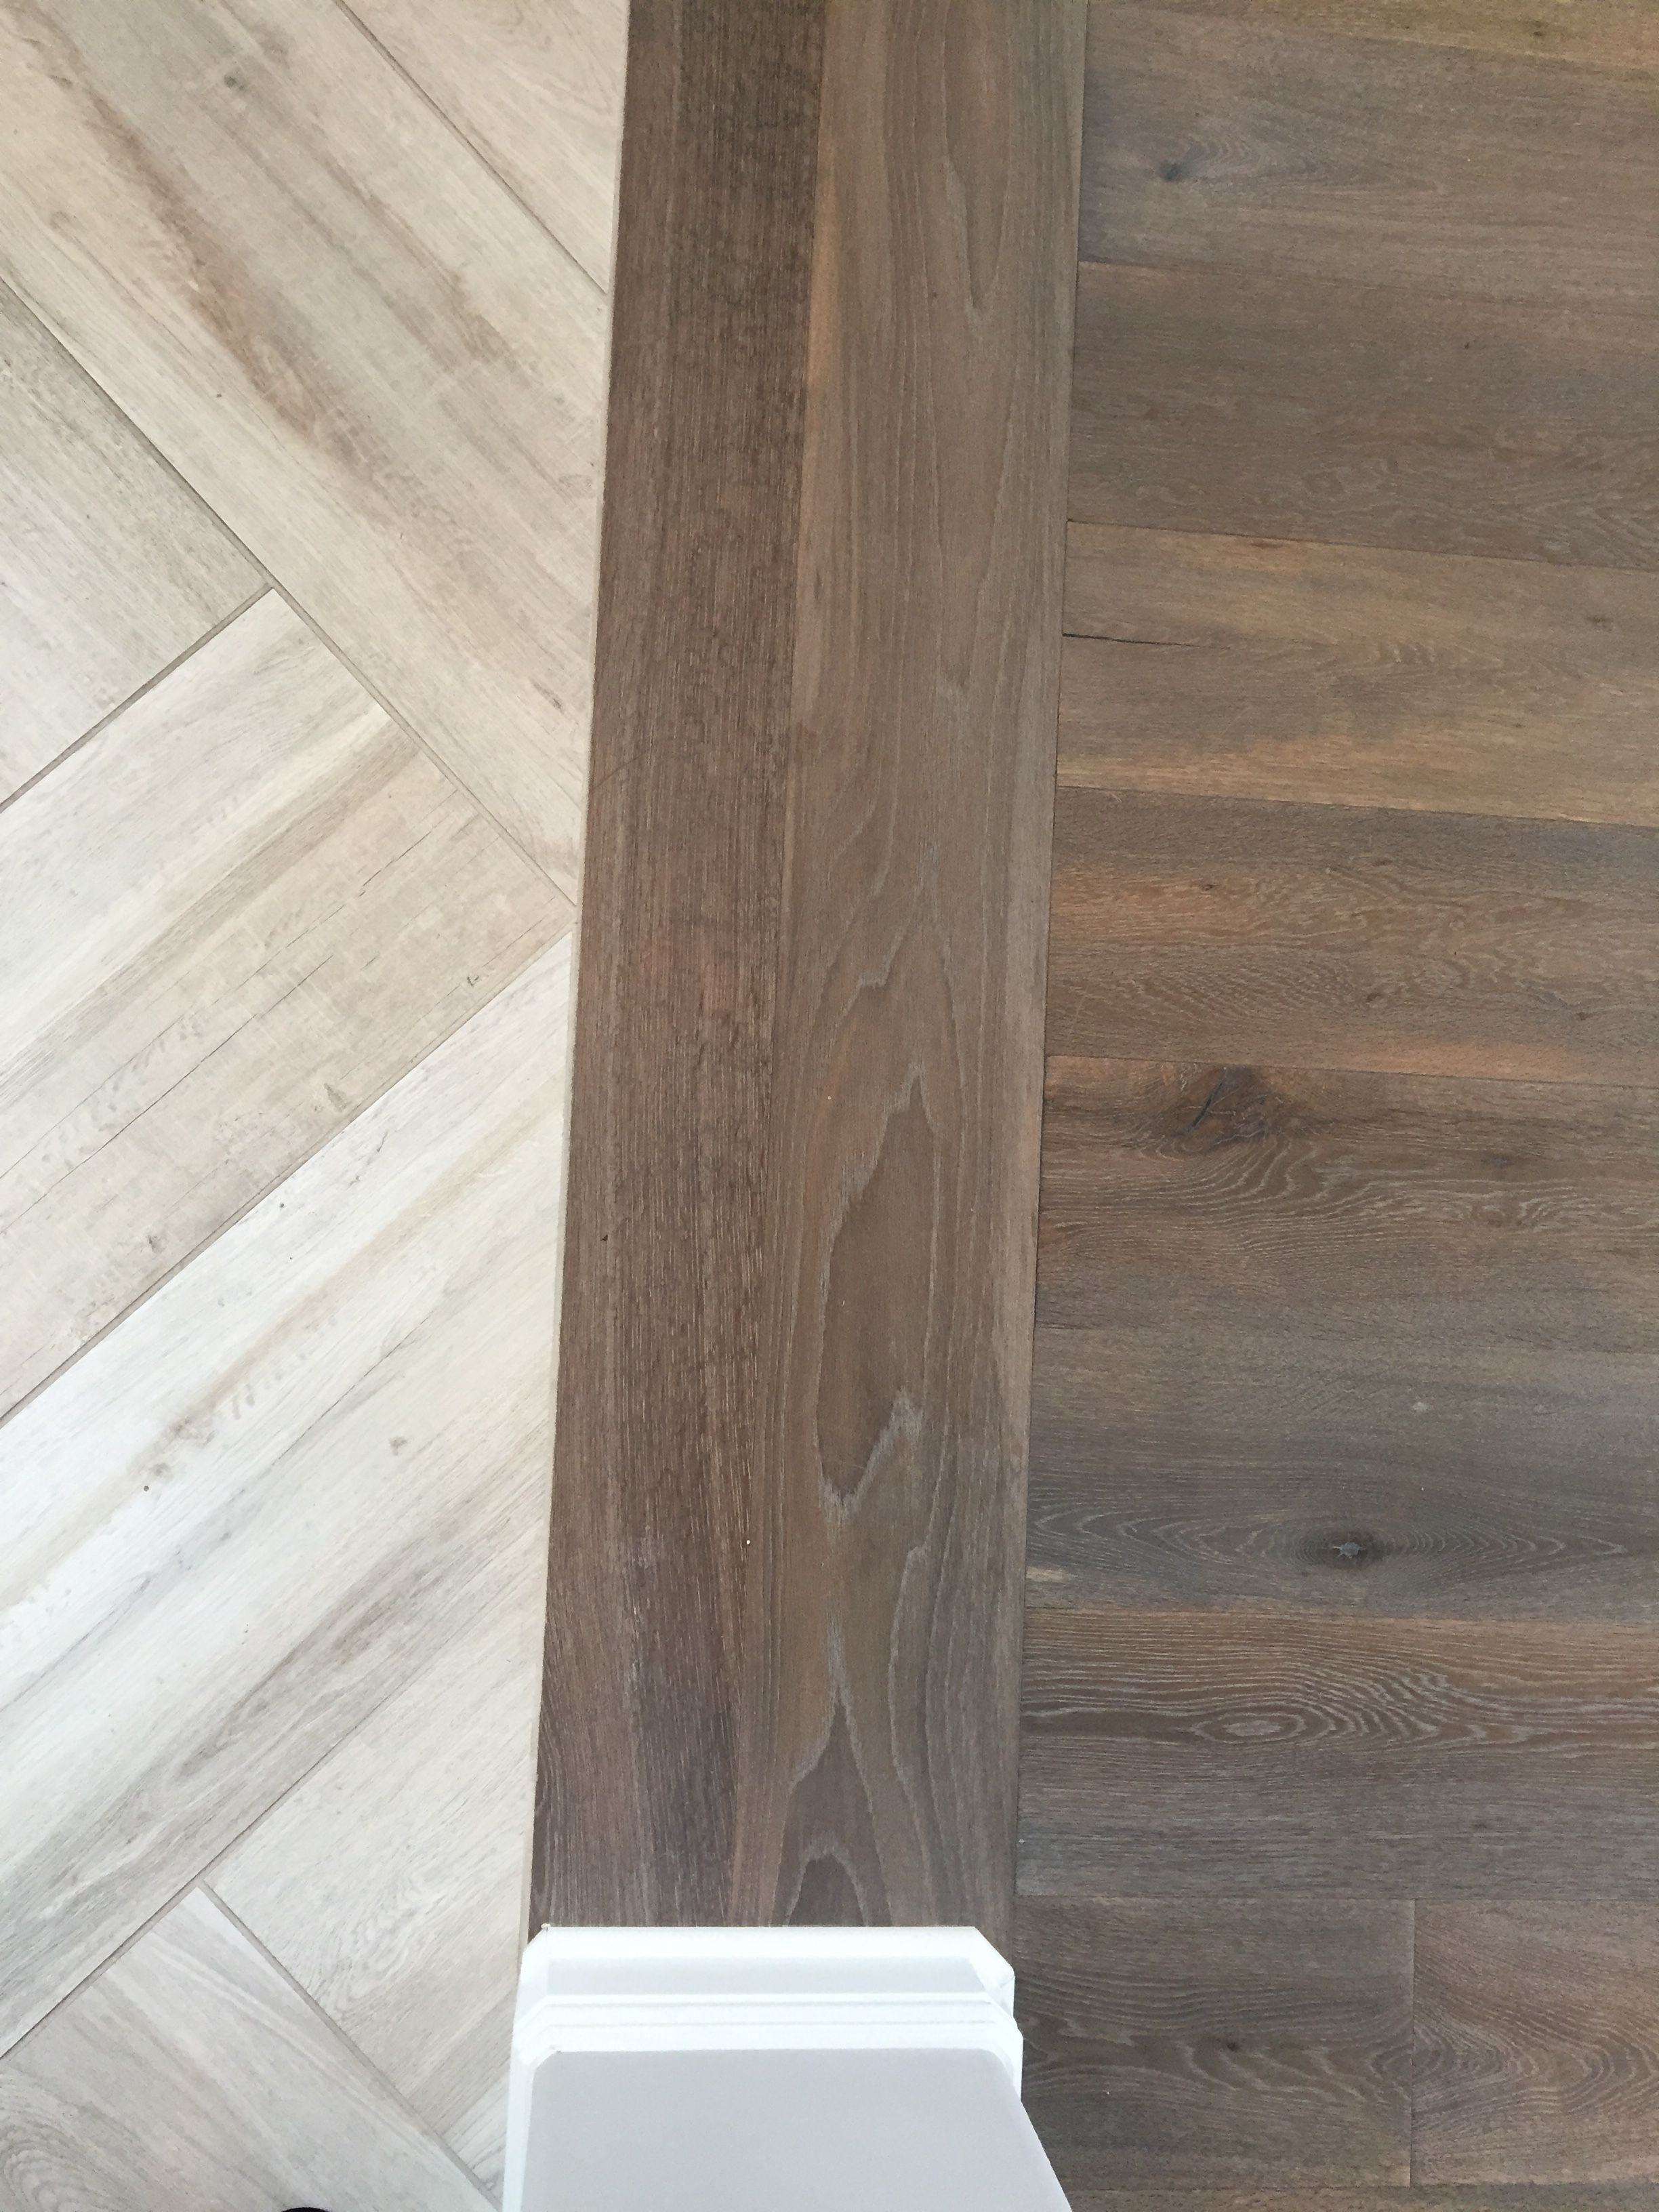 20 Recommended How to Clean Engineered Hardwood Floors after Installation 2021 free download how to clean engineered hardwood floors after installation of floor transition laminate to herringbone tile pattern model inside floor transition laminate to herringbone tile pattern herring